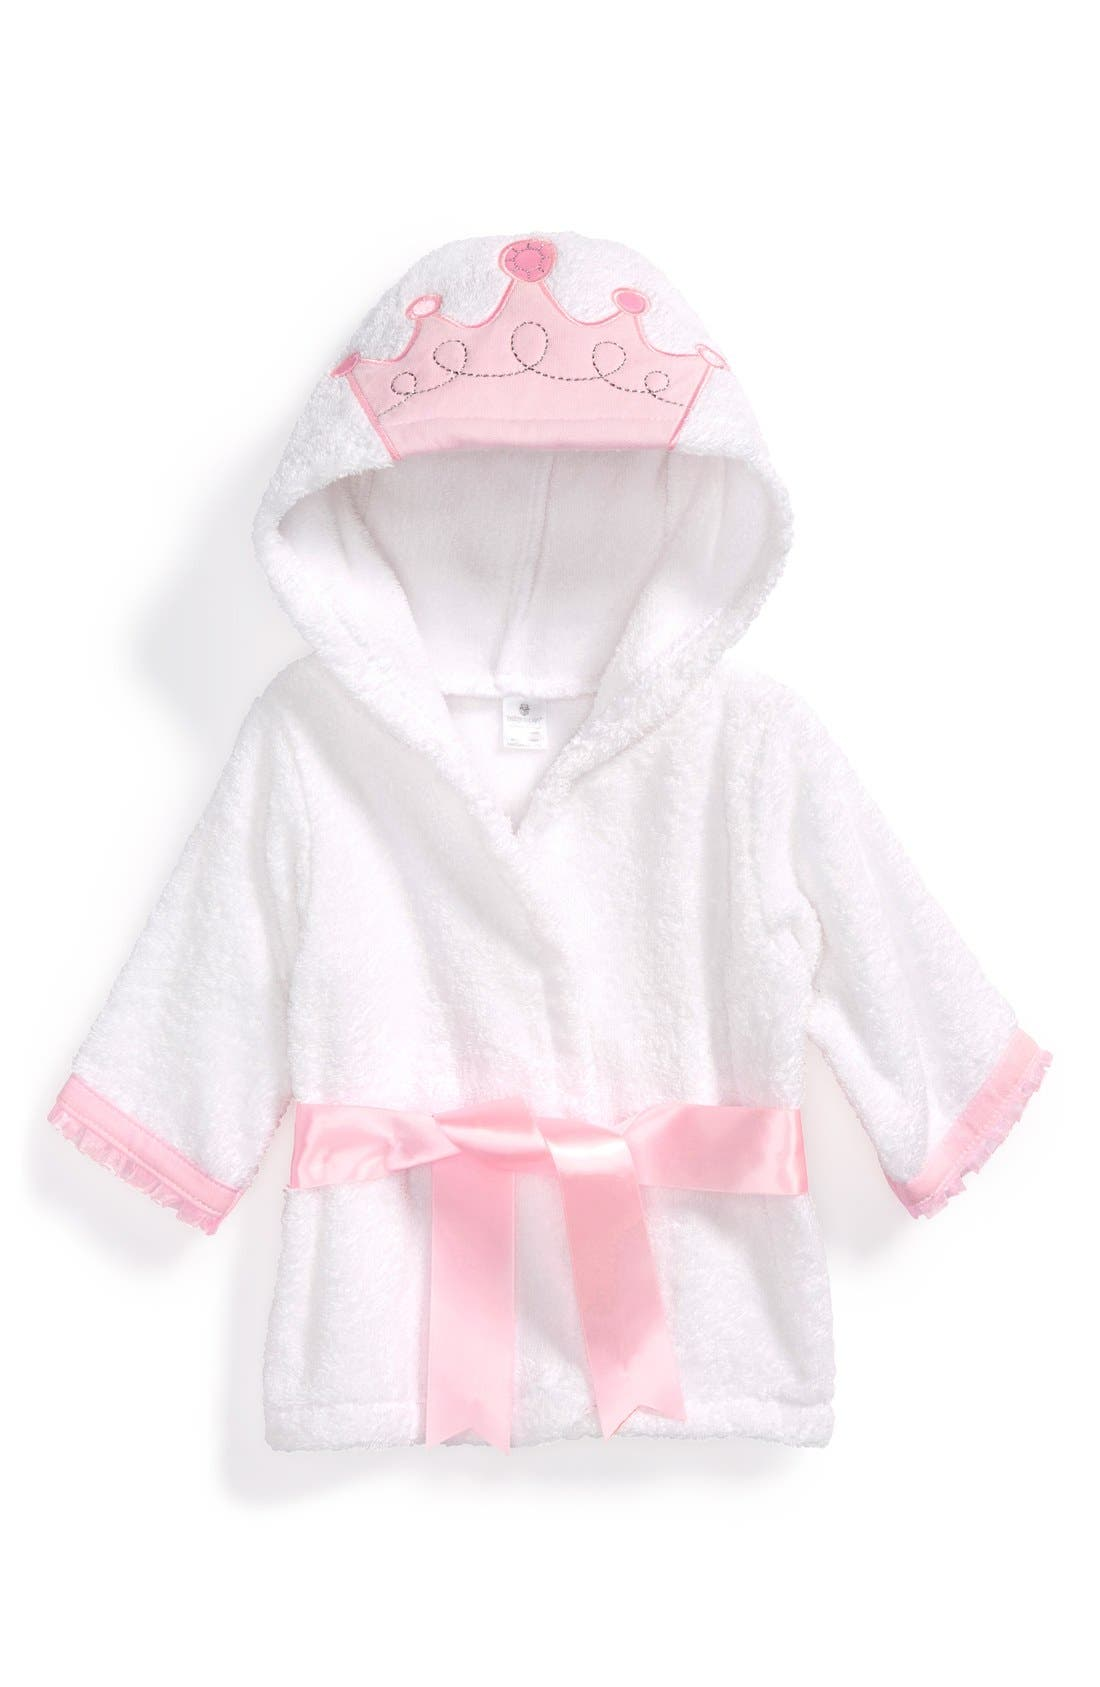 Main Image - Baby Aspen Little Princess Hooded Terry Robe (Baby)